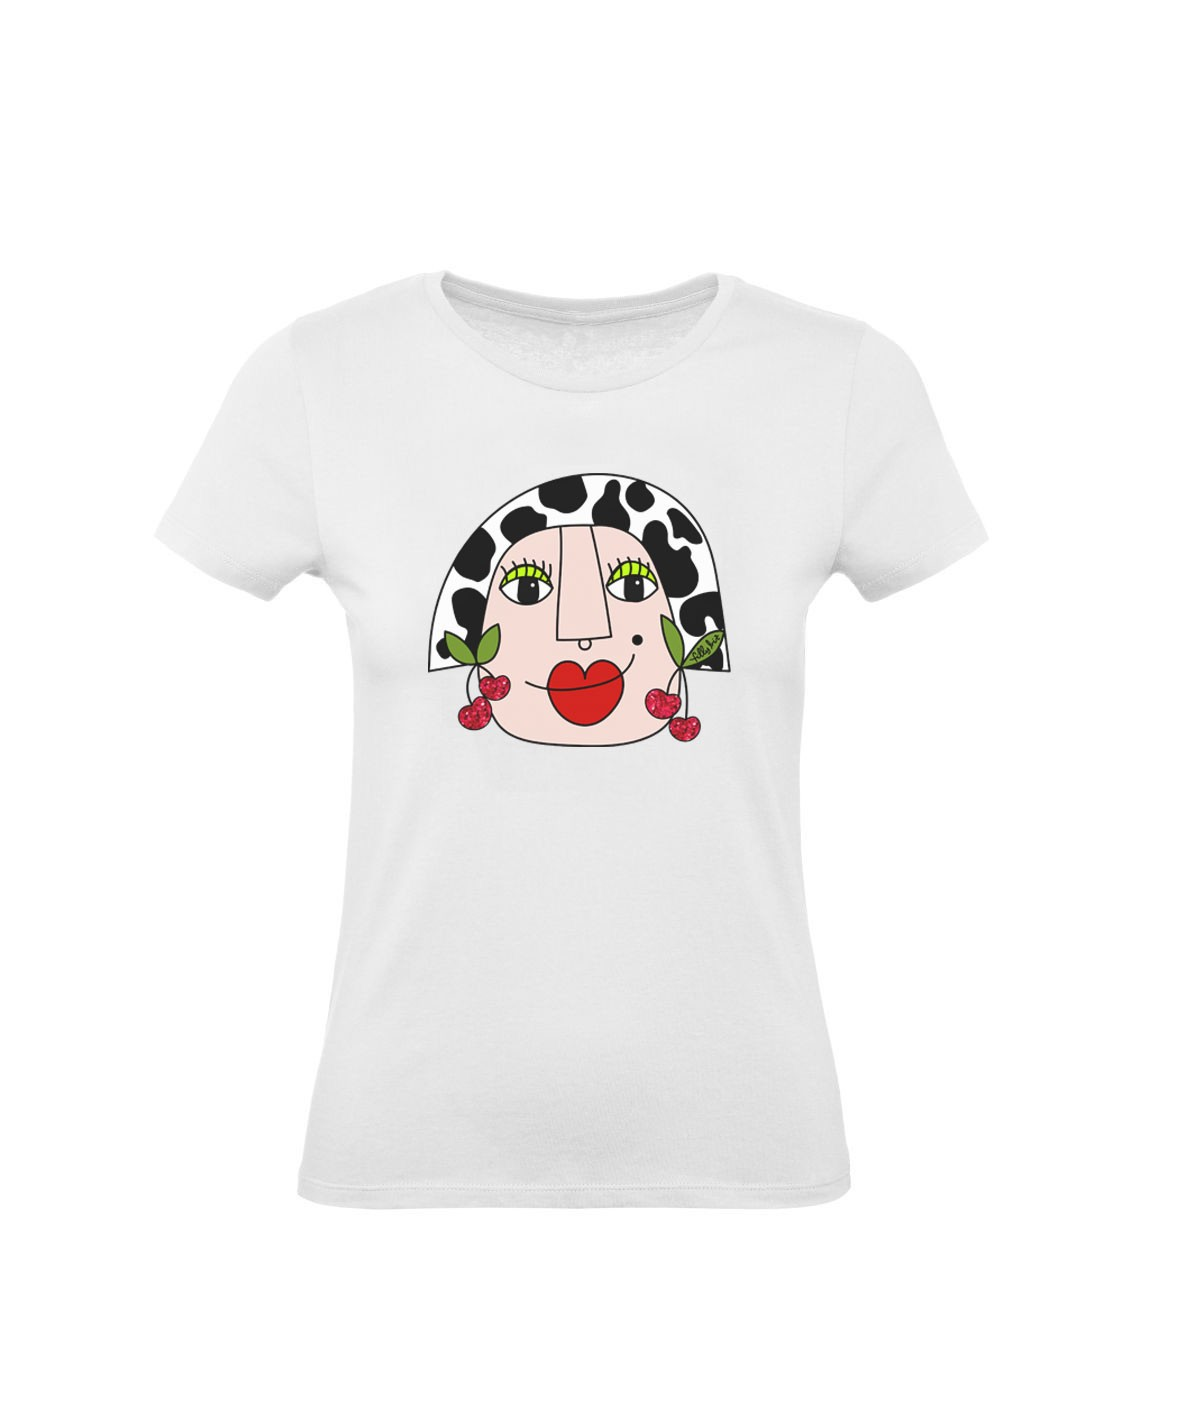 Cow girl ● printed t-shirt